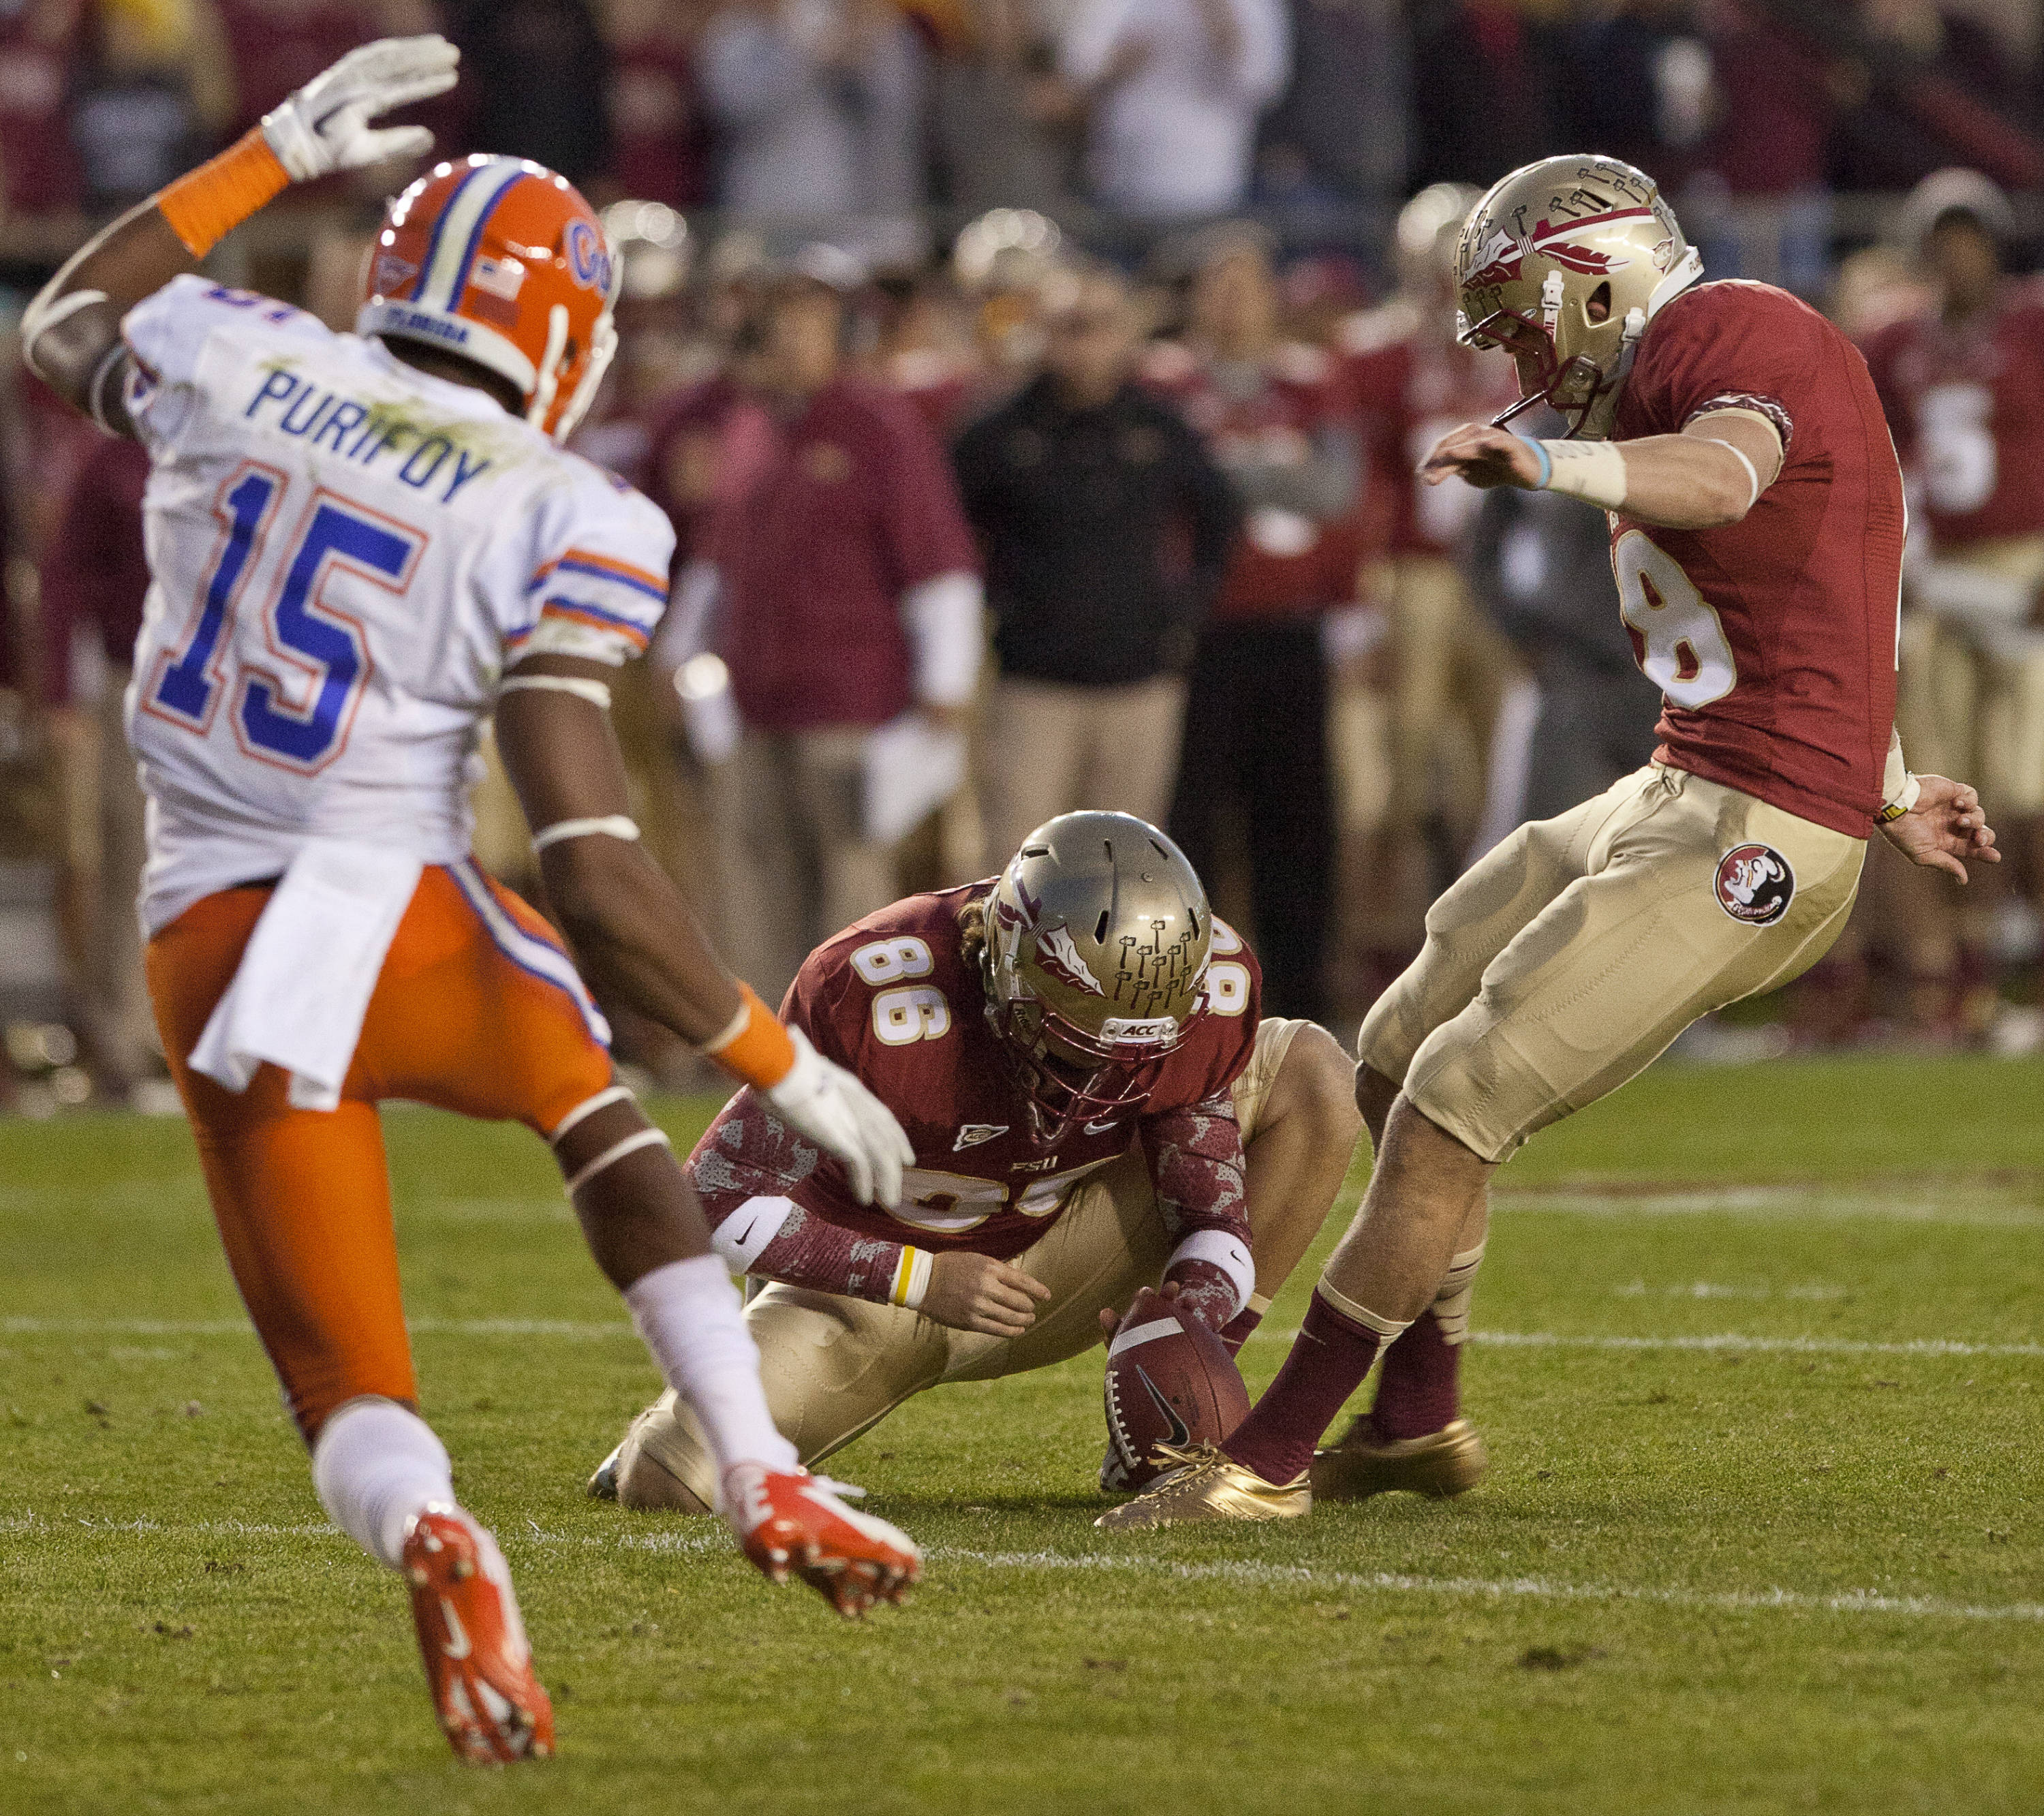 Dustin Hopkins (18) kicks a extra point during FSU Football's game against UF on Saturday, November 24, 2012 in Tallahassee, Fla.